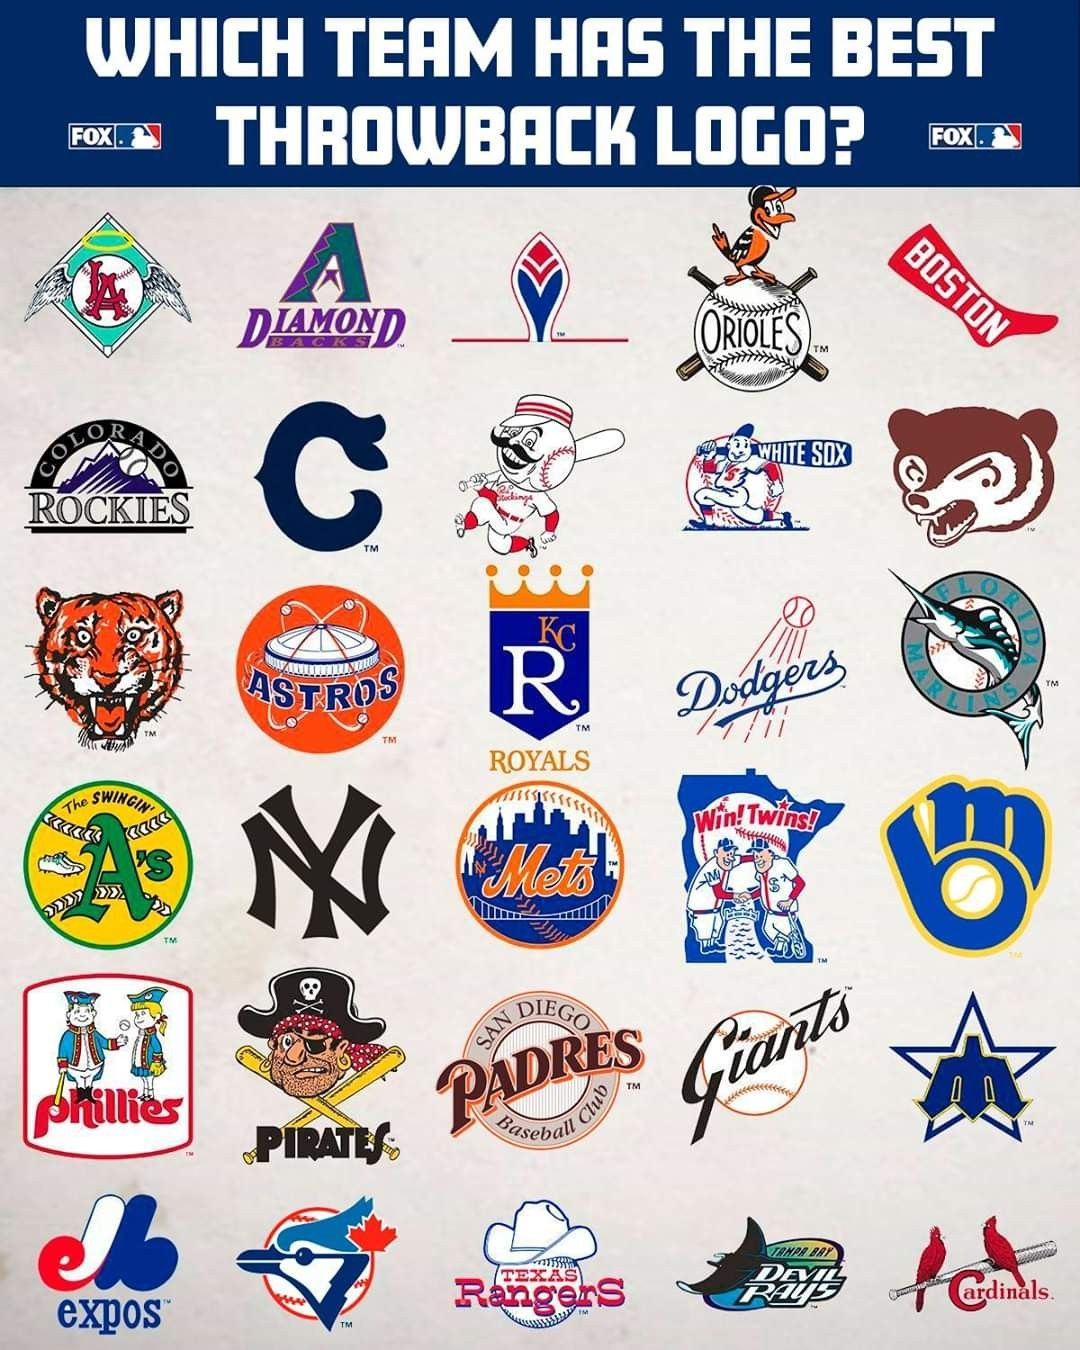 Pin By Jim Keneagy On Baseball In 2020 Baseball Teams Logo Mlb Logos Baseball History